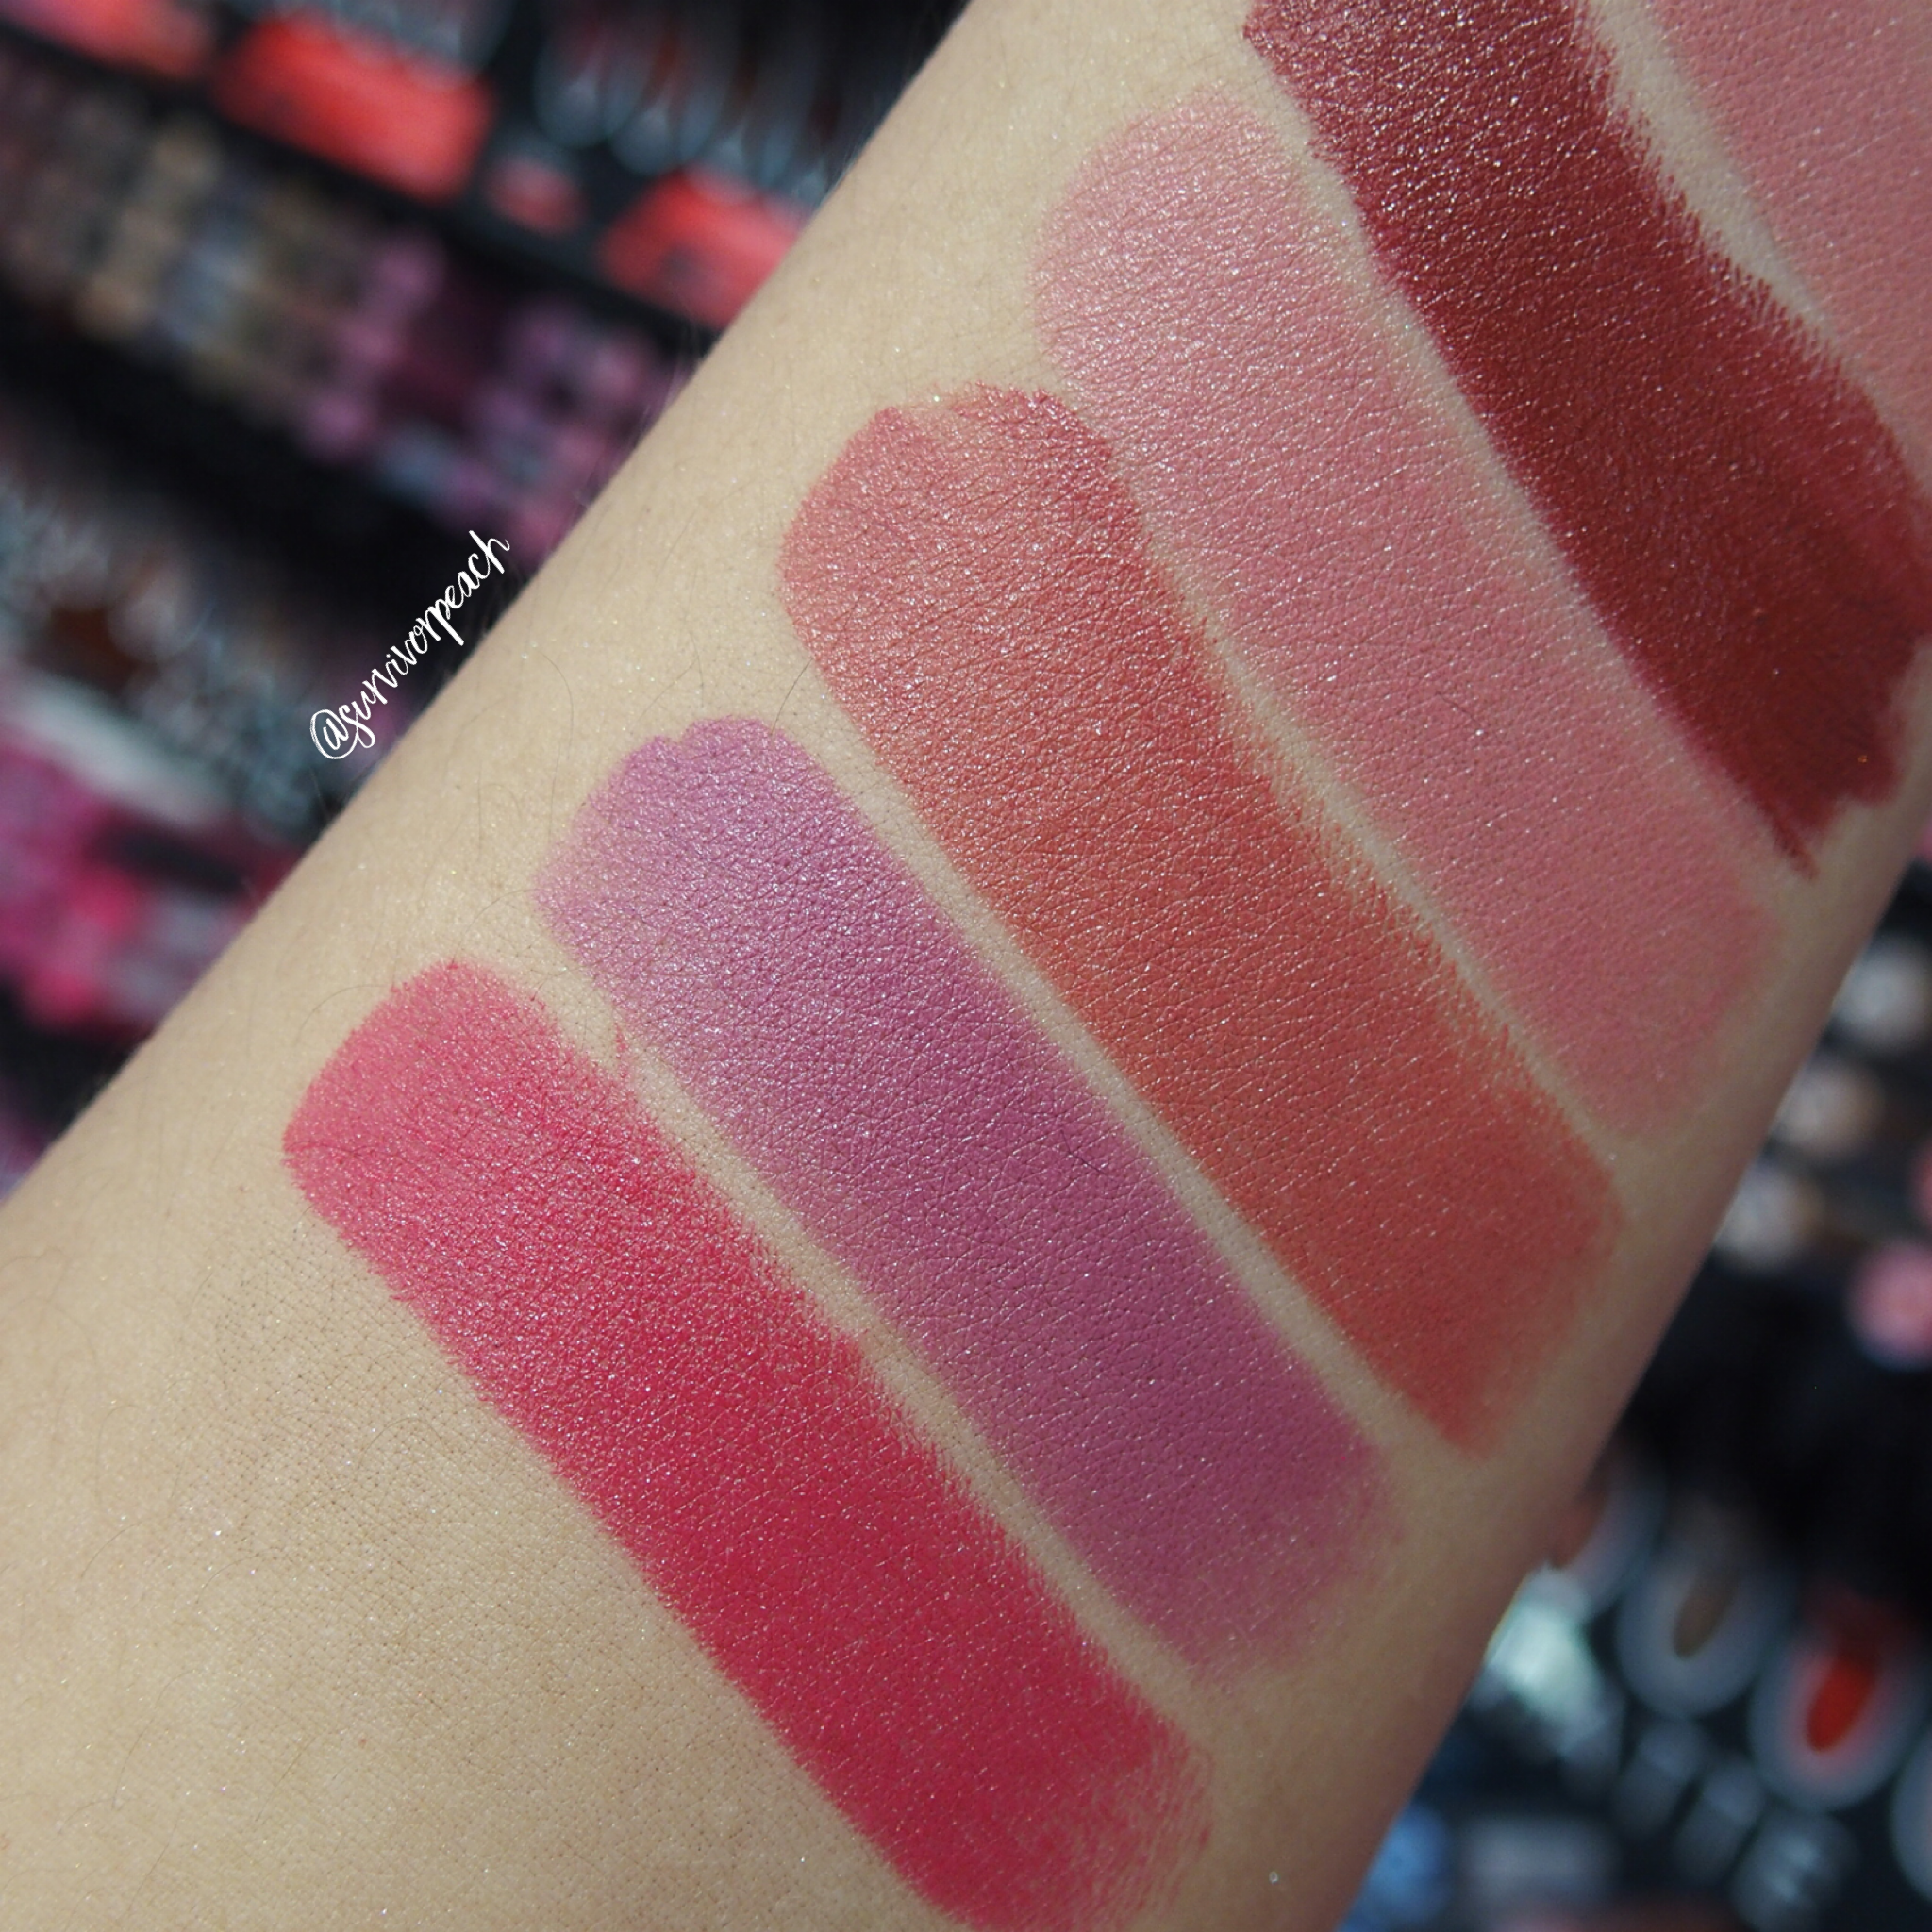 Sephora Collection Rouge Satin Lipstick swatches - S02 Courtisane, S04 No Make Up, S05 Sunjkissed, S07 Bucket Kiss, S08 Drifting Away